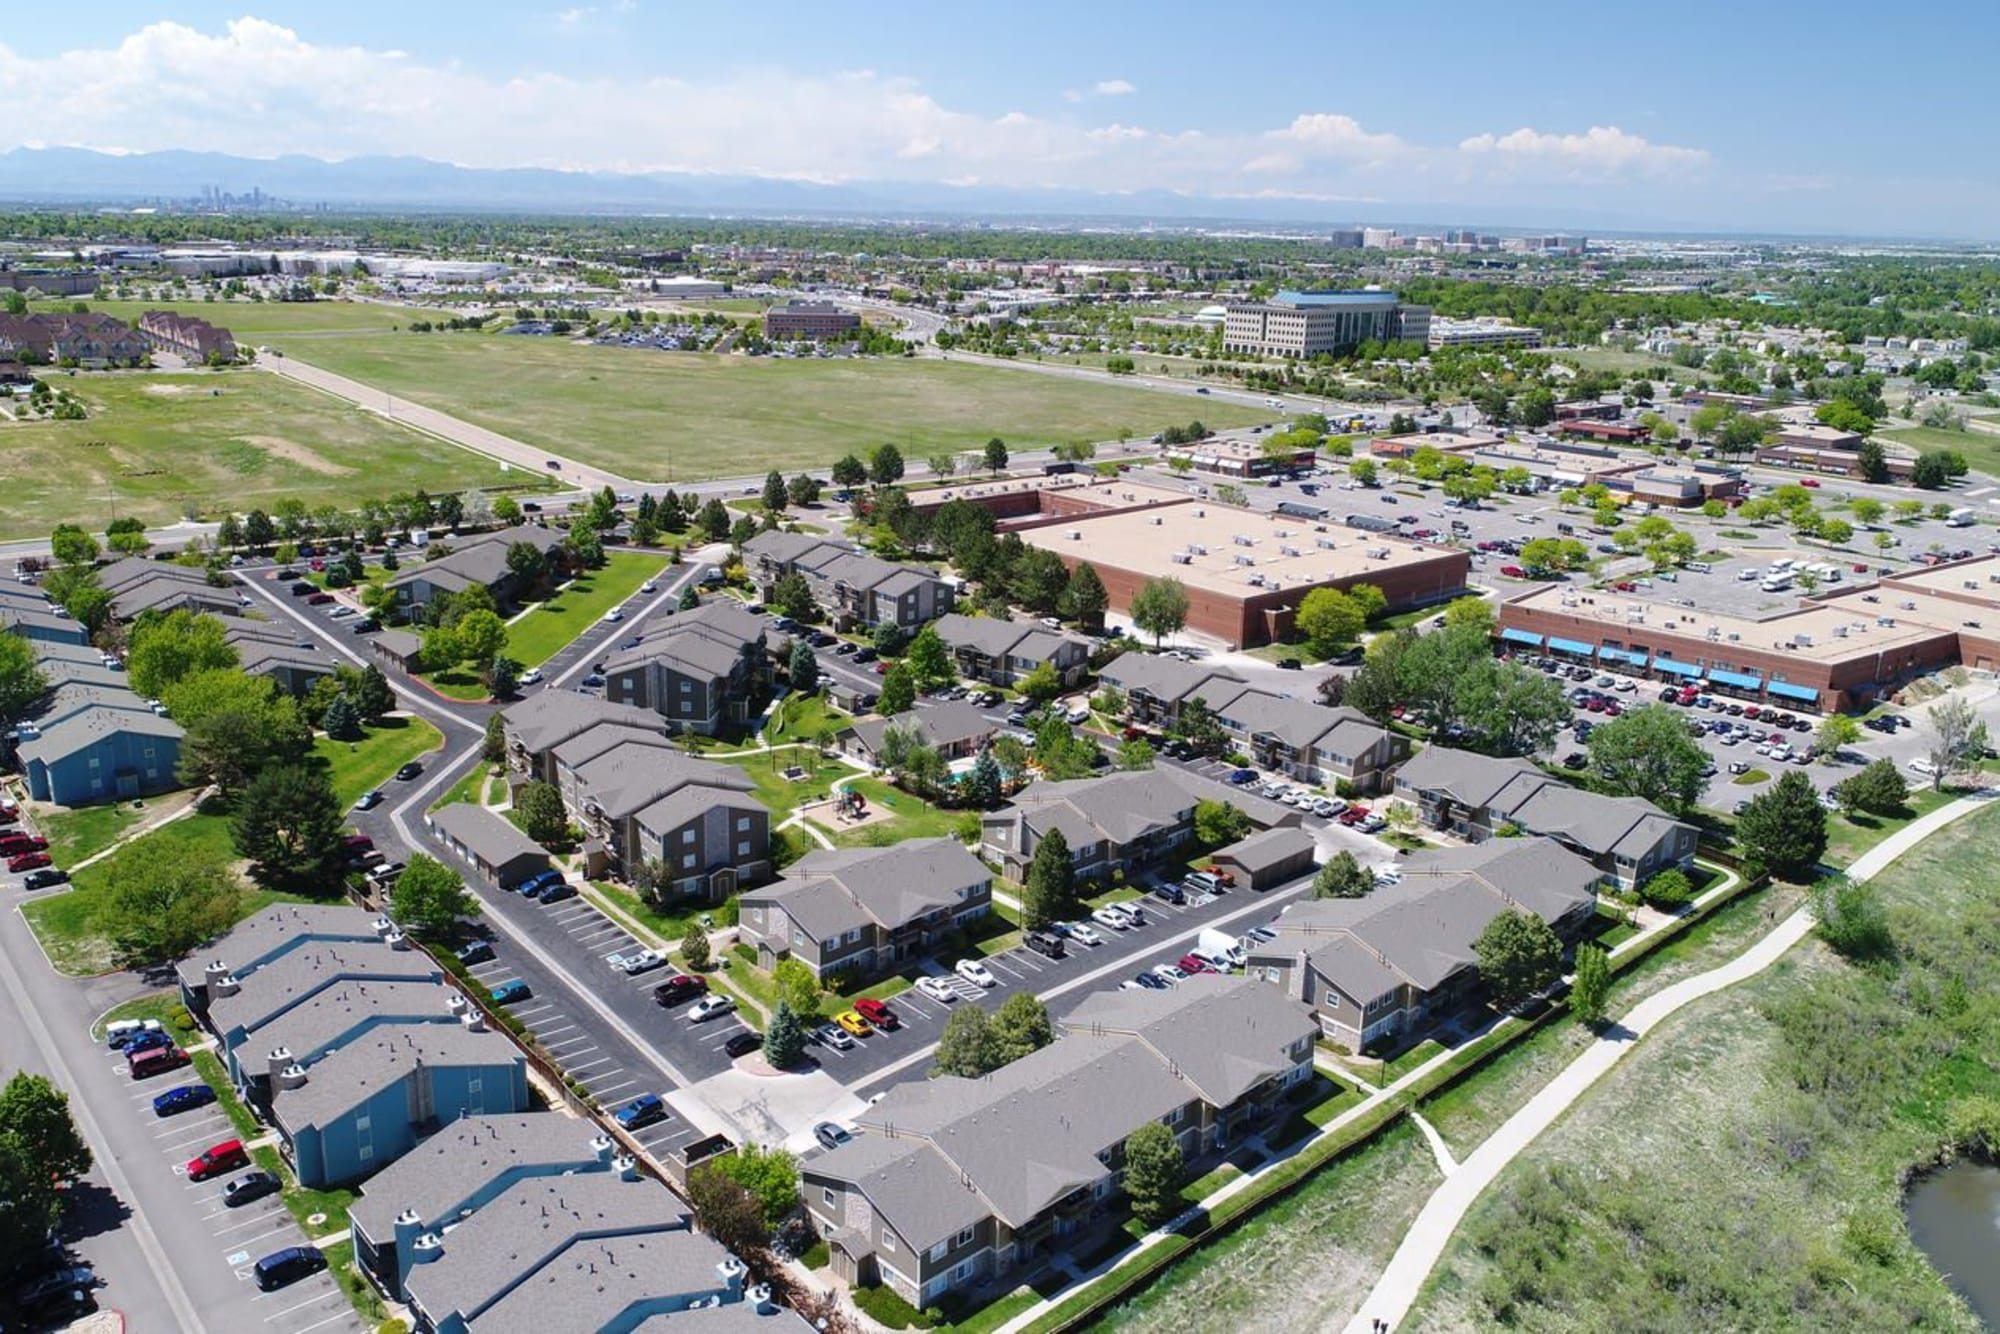 An aerial view of Crossroads at City Center Apartments in Aurora, Colorado